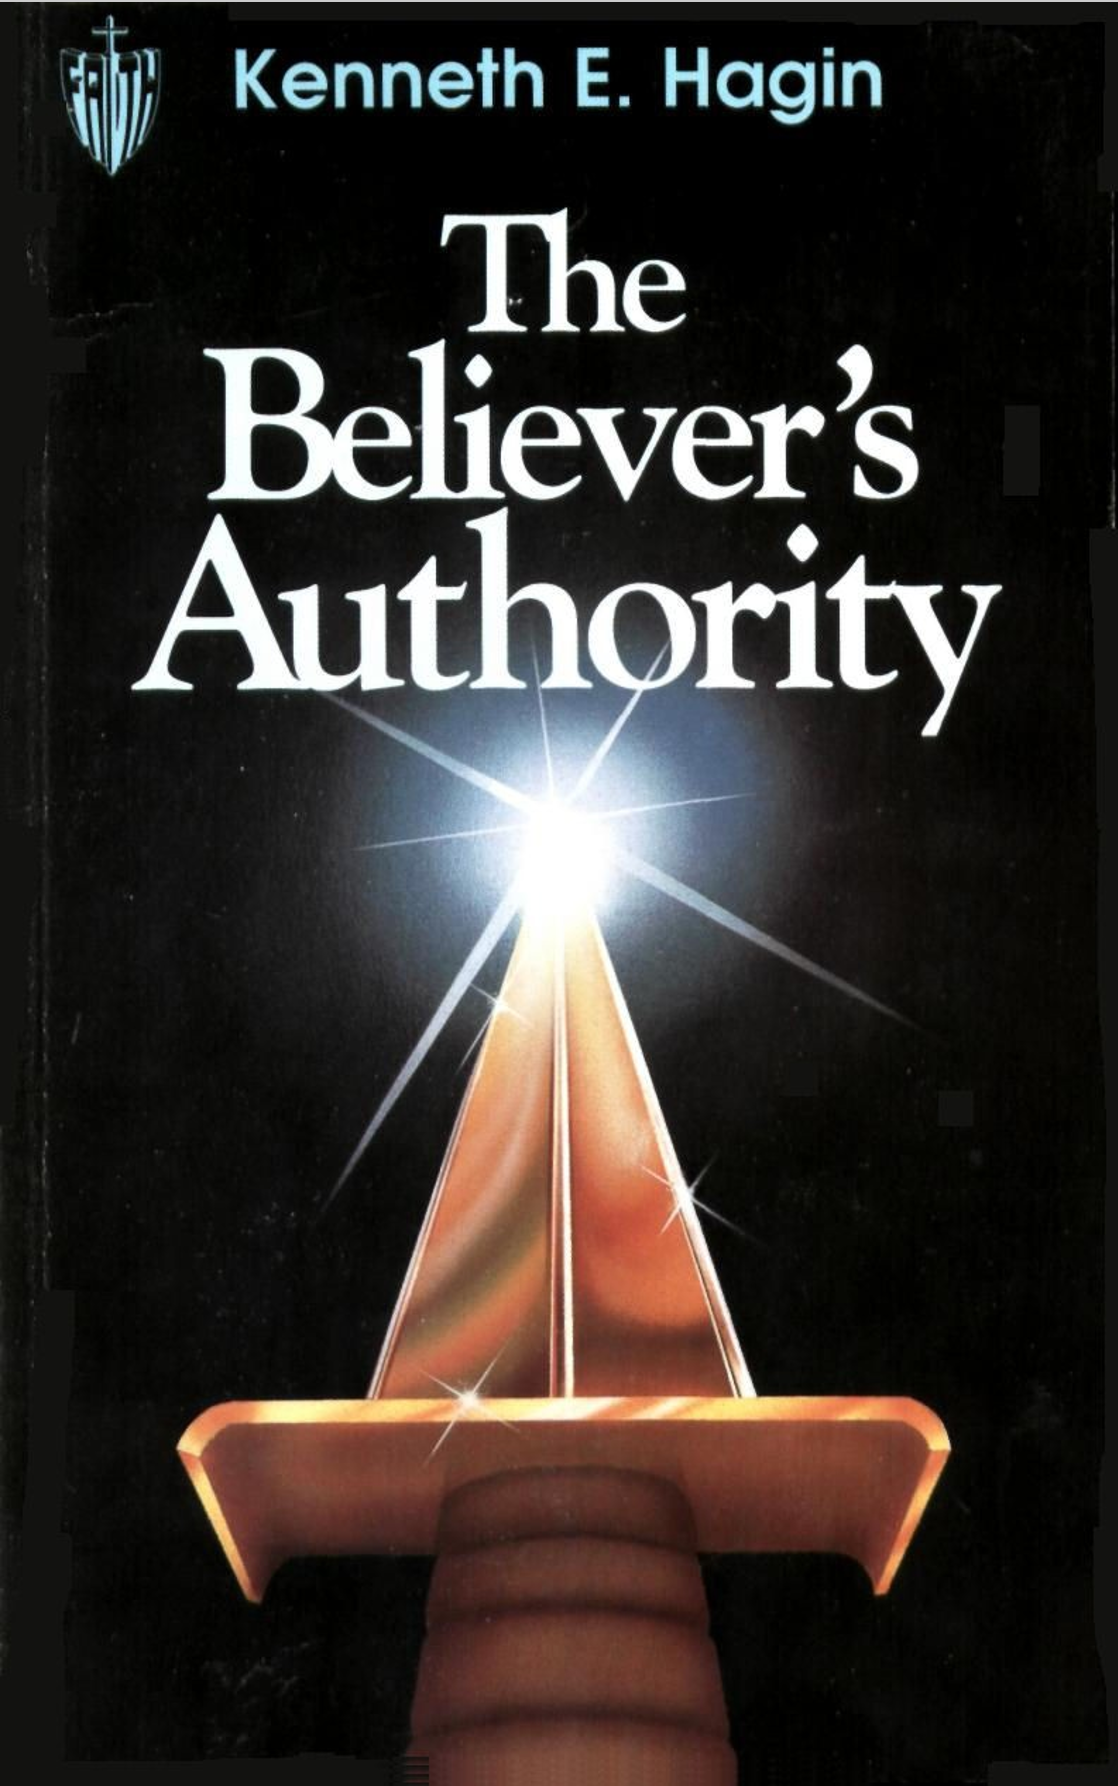 Rev. Kenneth Hagin uses the Word of God to explain the authority that belongs to every believer.